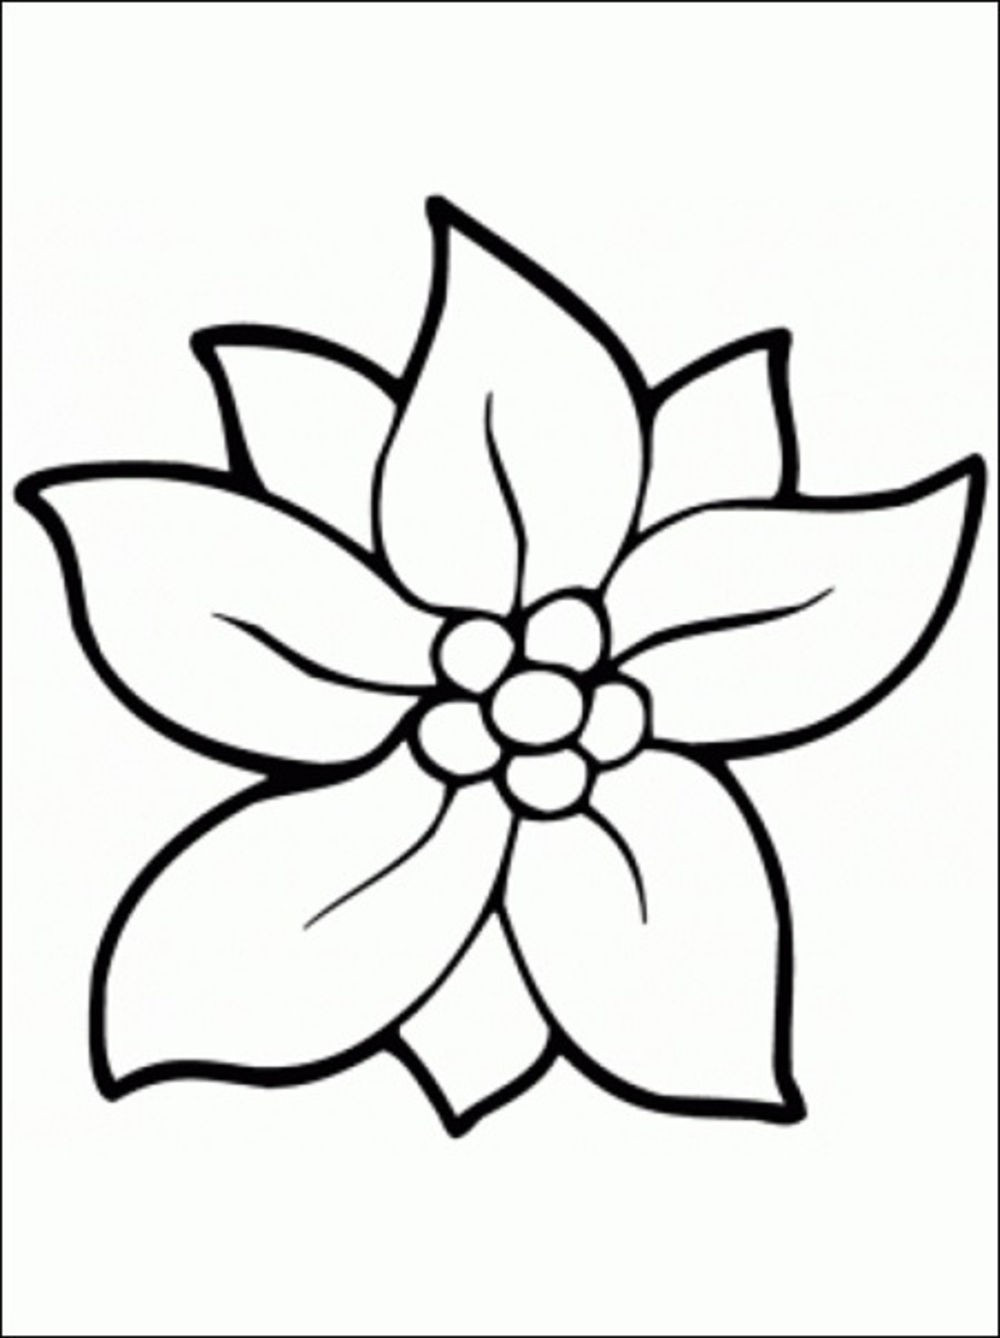 Coloring Pages For Kids Flowers  Flower Coloring Pages coloringsuite